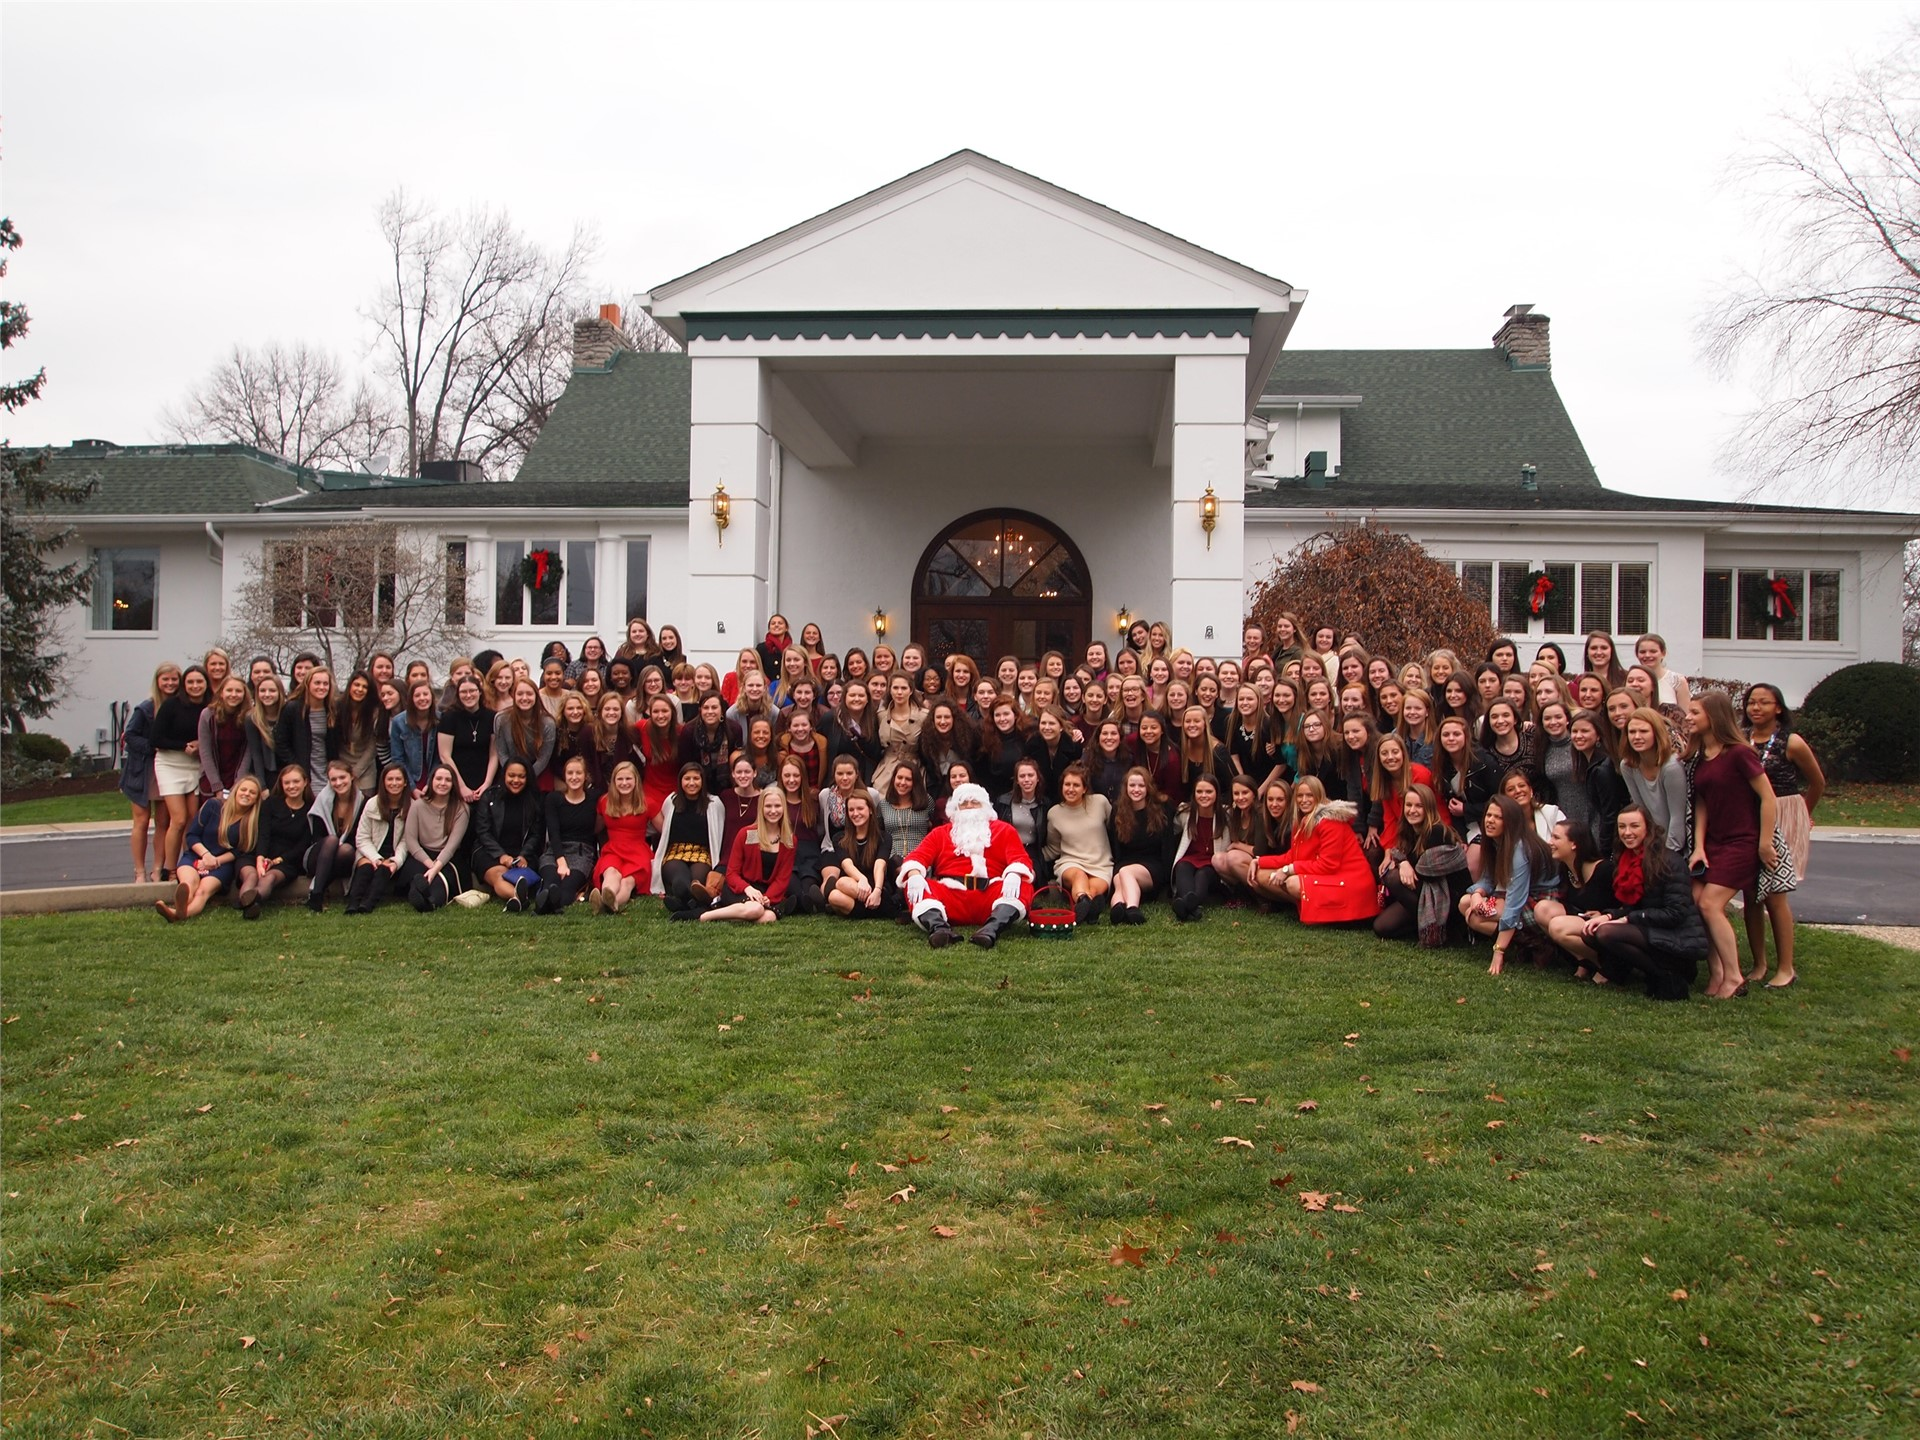 The senior class posed for this group pictures at the Christmas Luncheon